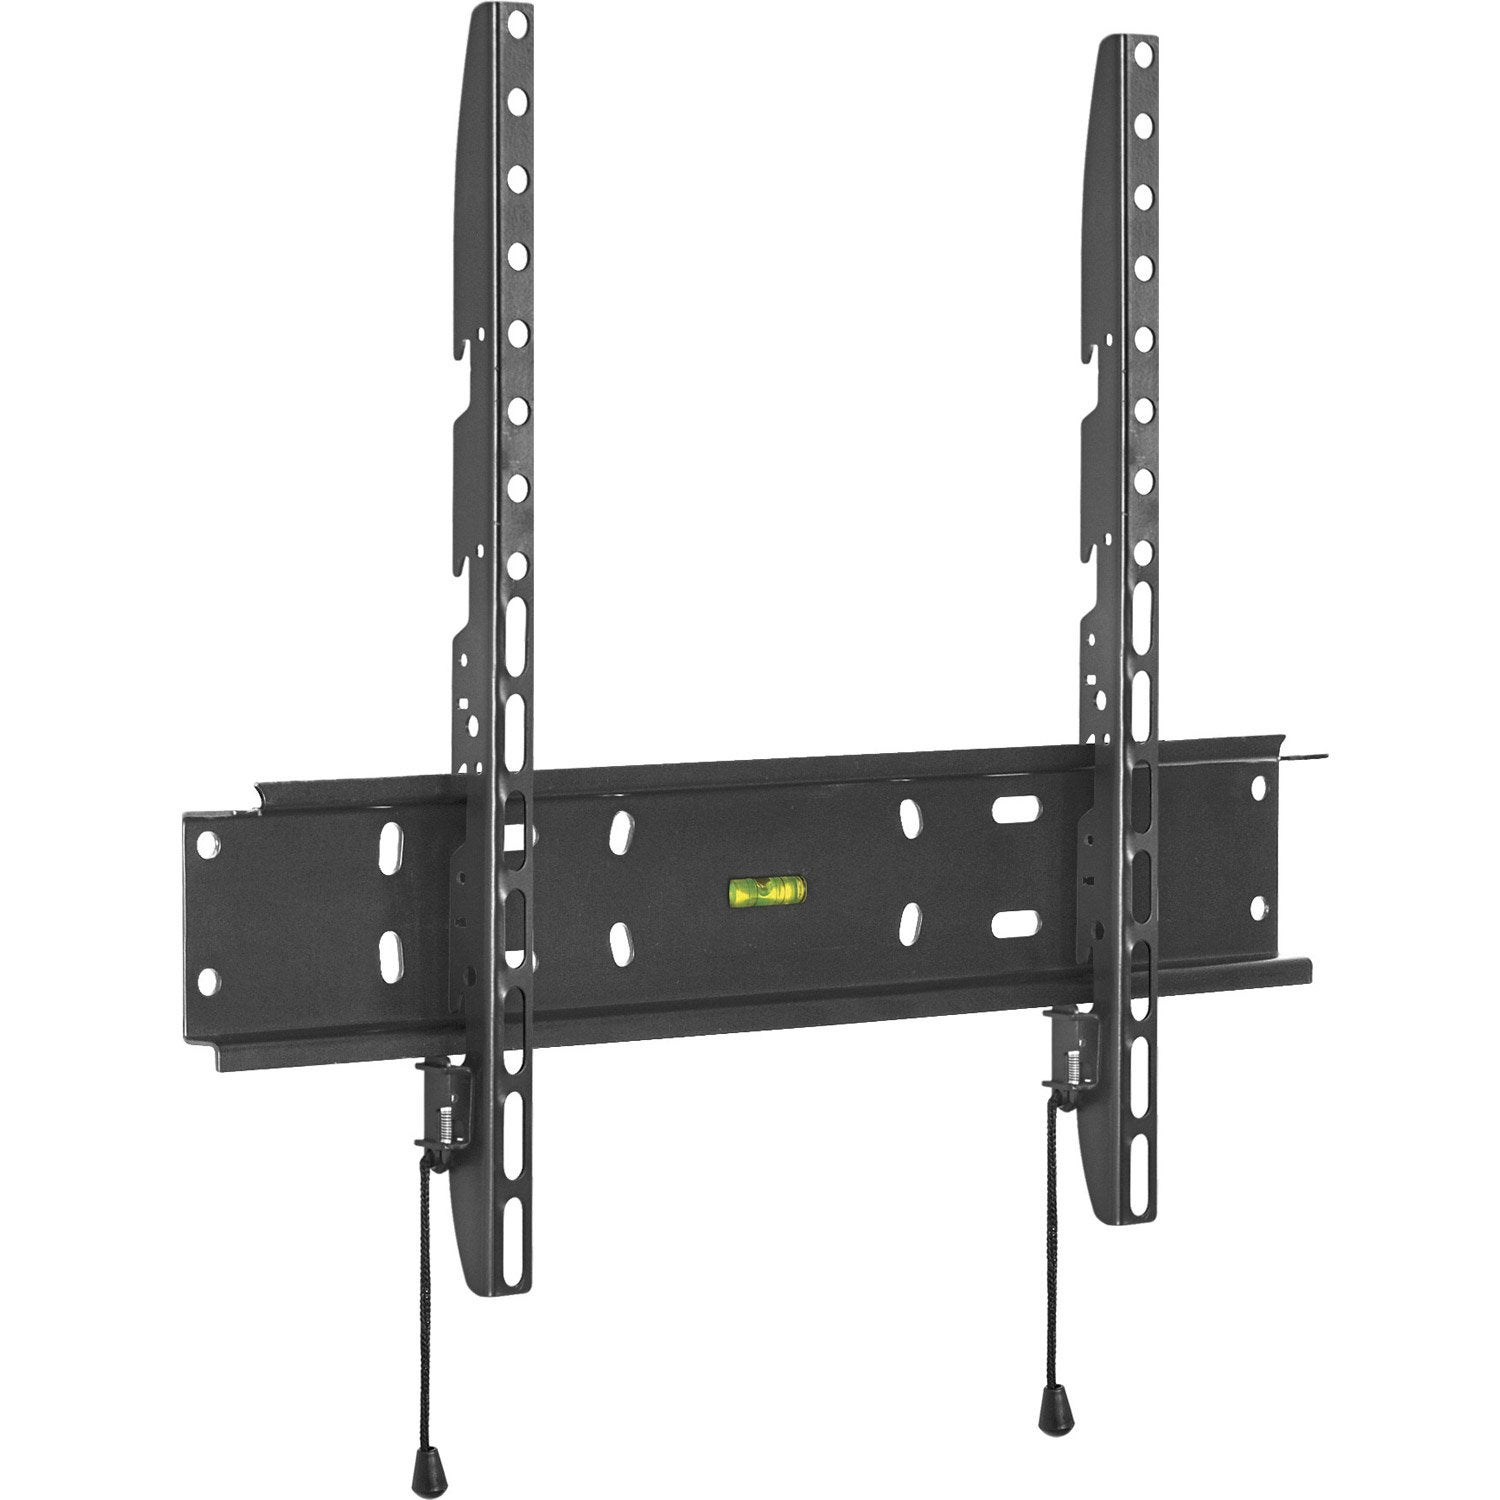 support tv led n oplasma barkan 74 165 cm 50 kg leroy merlin. Black Bedroom Furniture Sets. Home Design Ideas